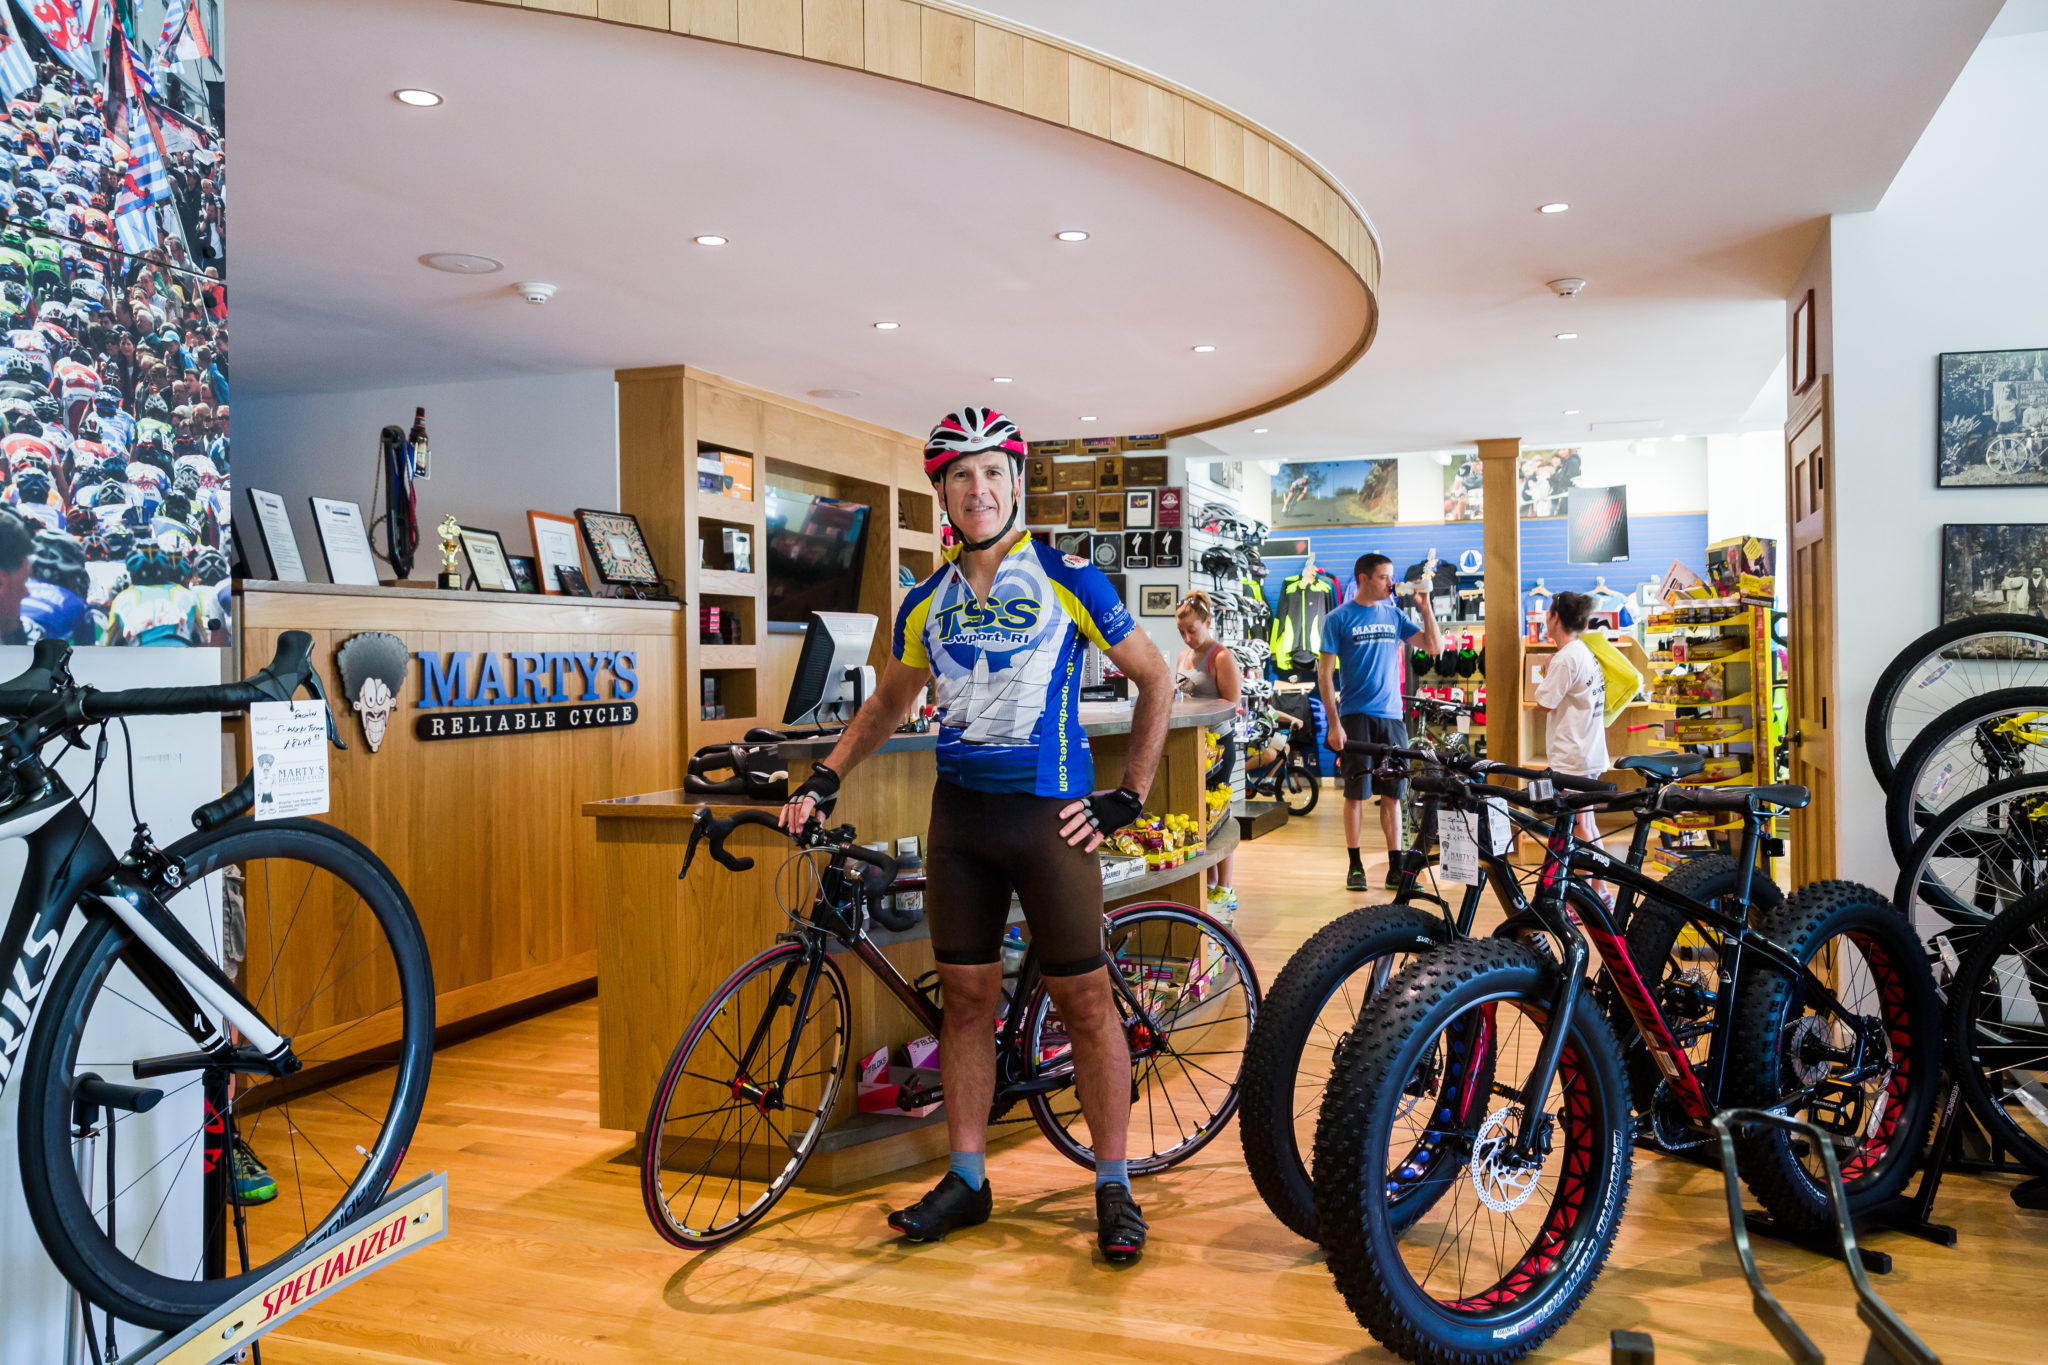 Interior shot of the Marty's Reliable Bicycles with man standing next to his bicycle.